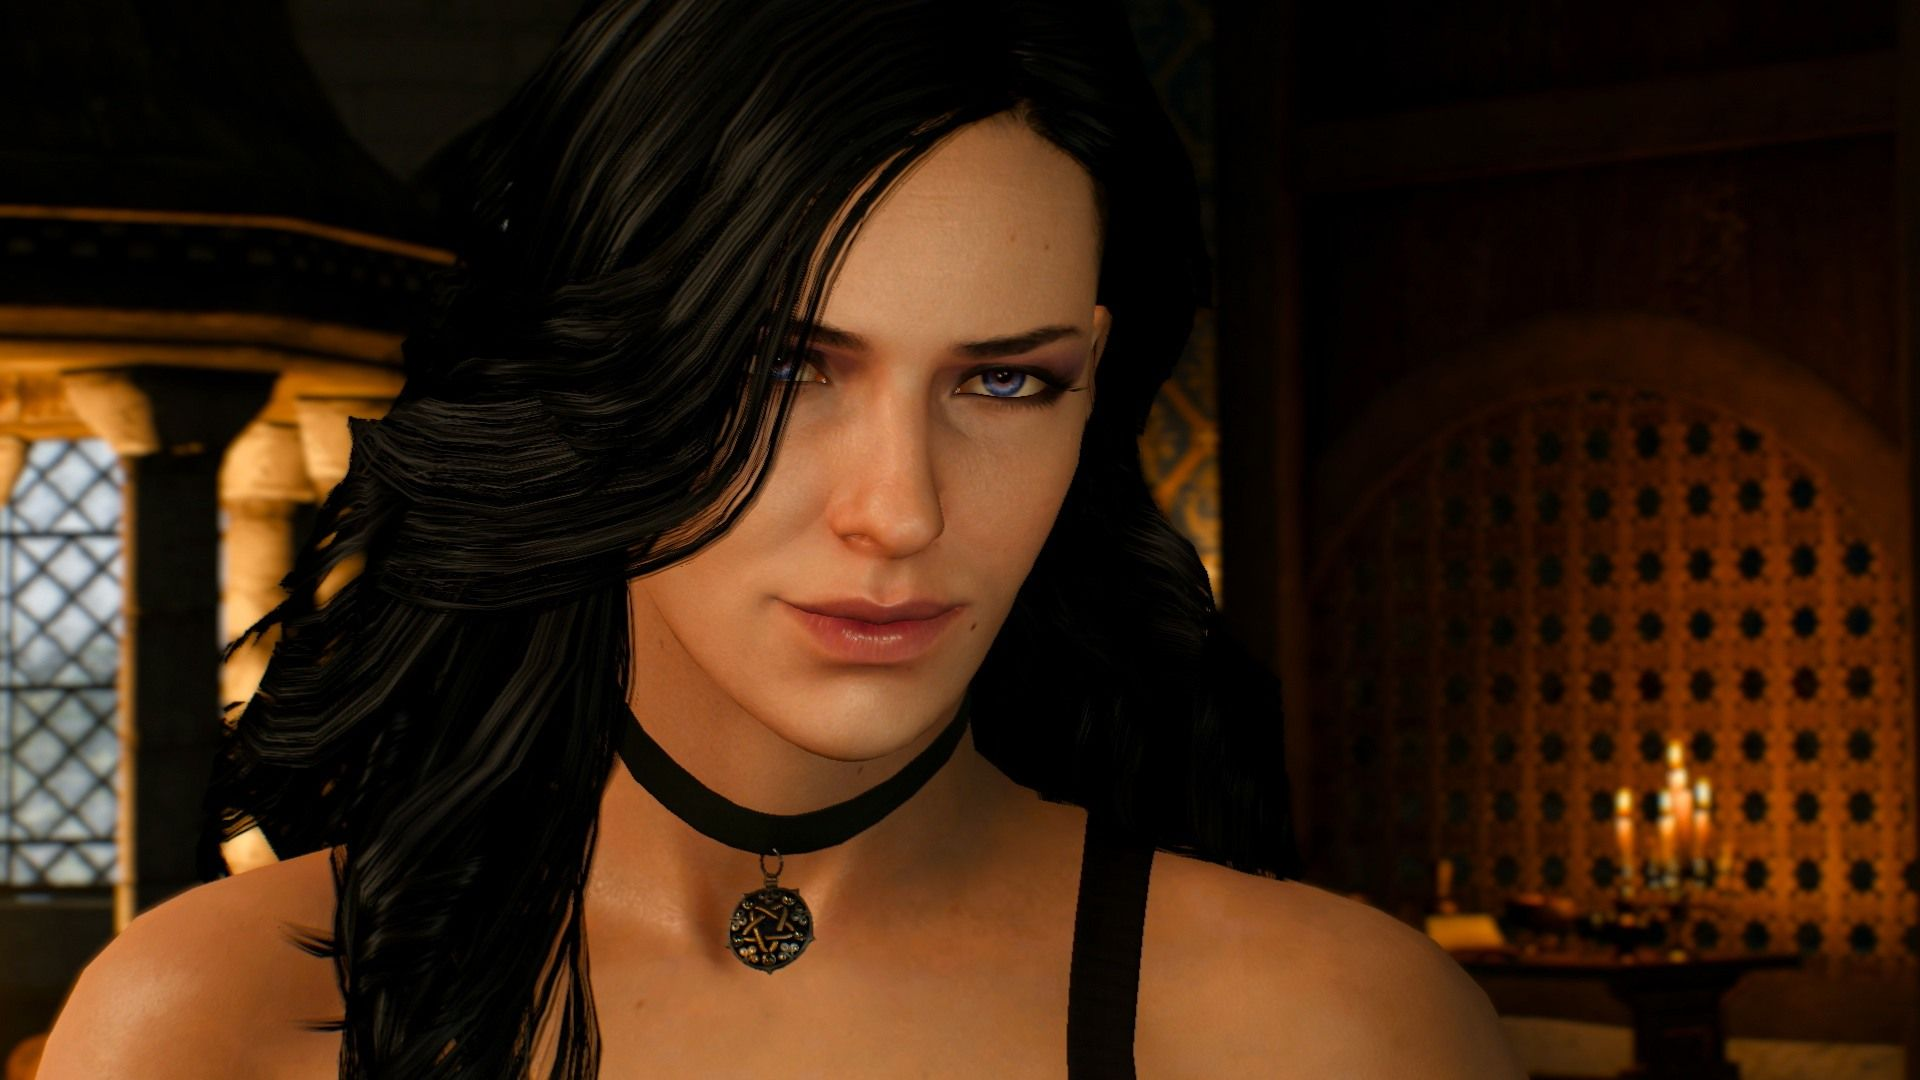 Witcher Yennefer, Wallpaper Image